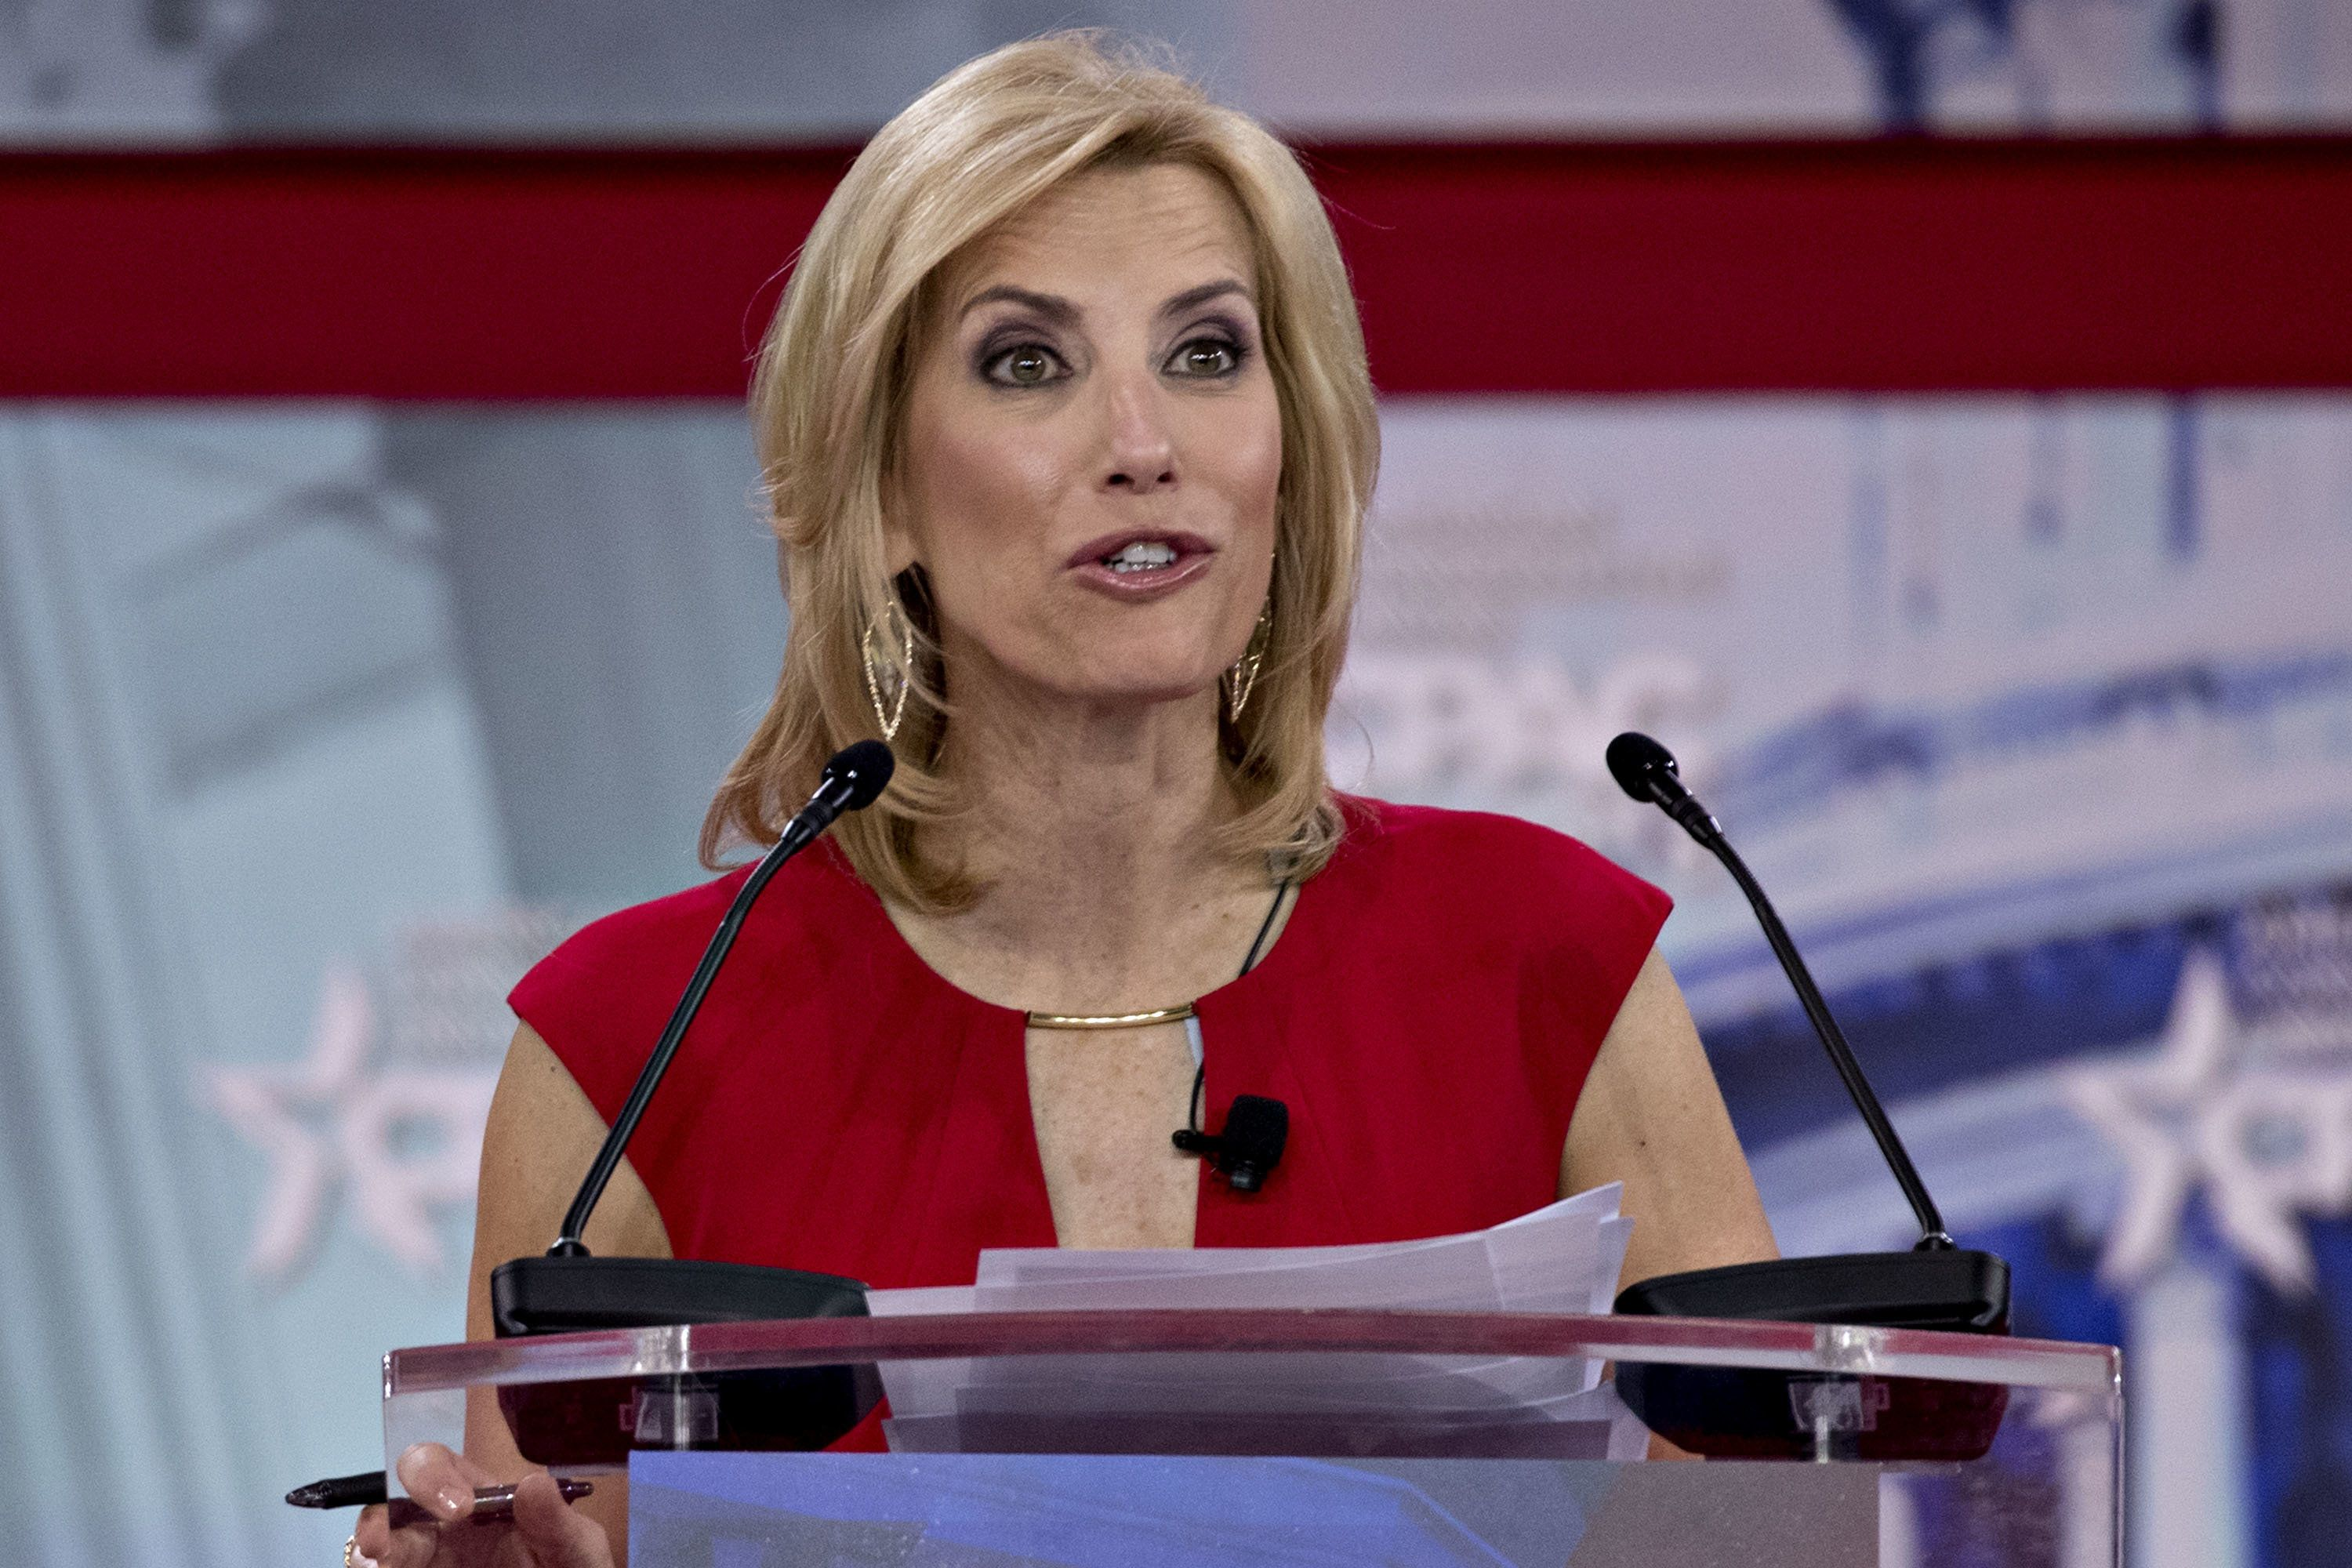 Laura Ingraham Rants About Losing The Country To 'Huge Demographic